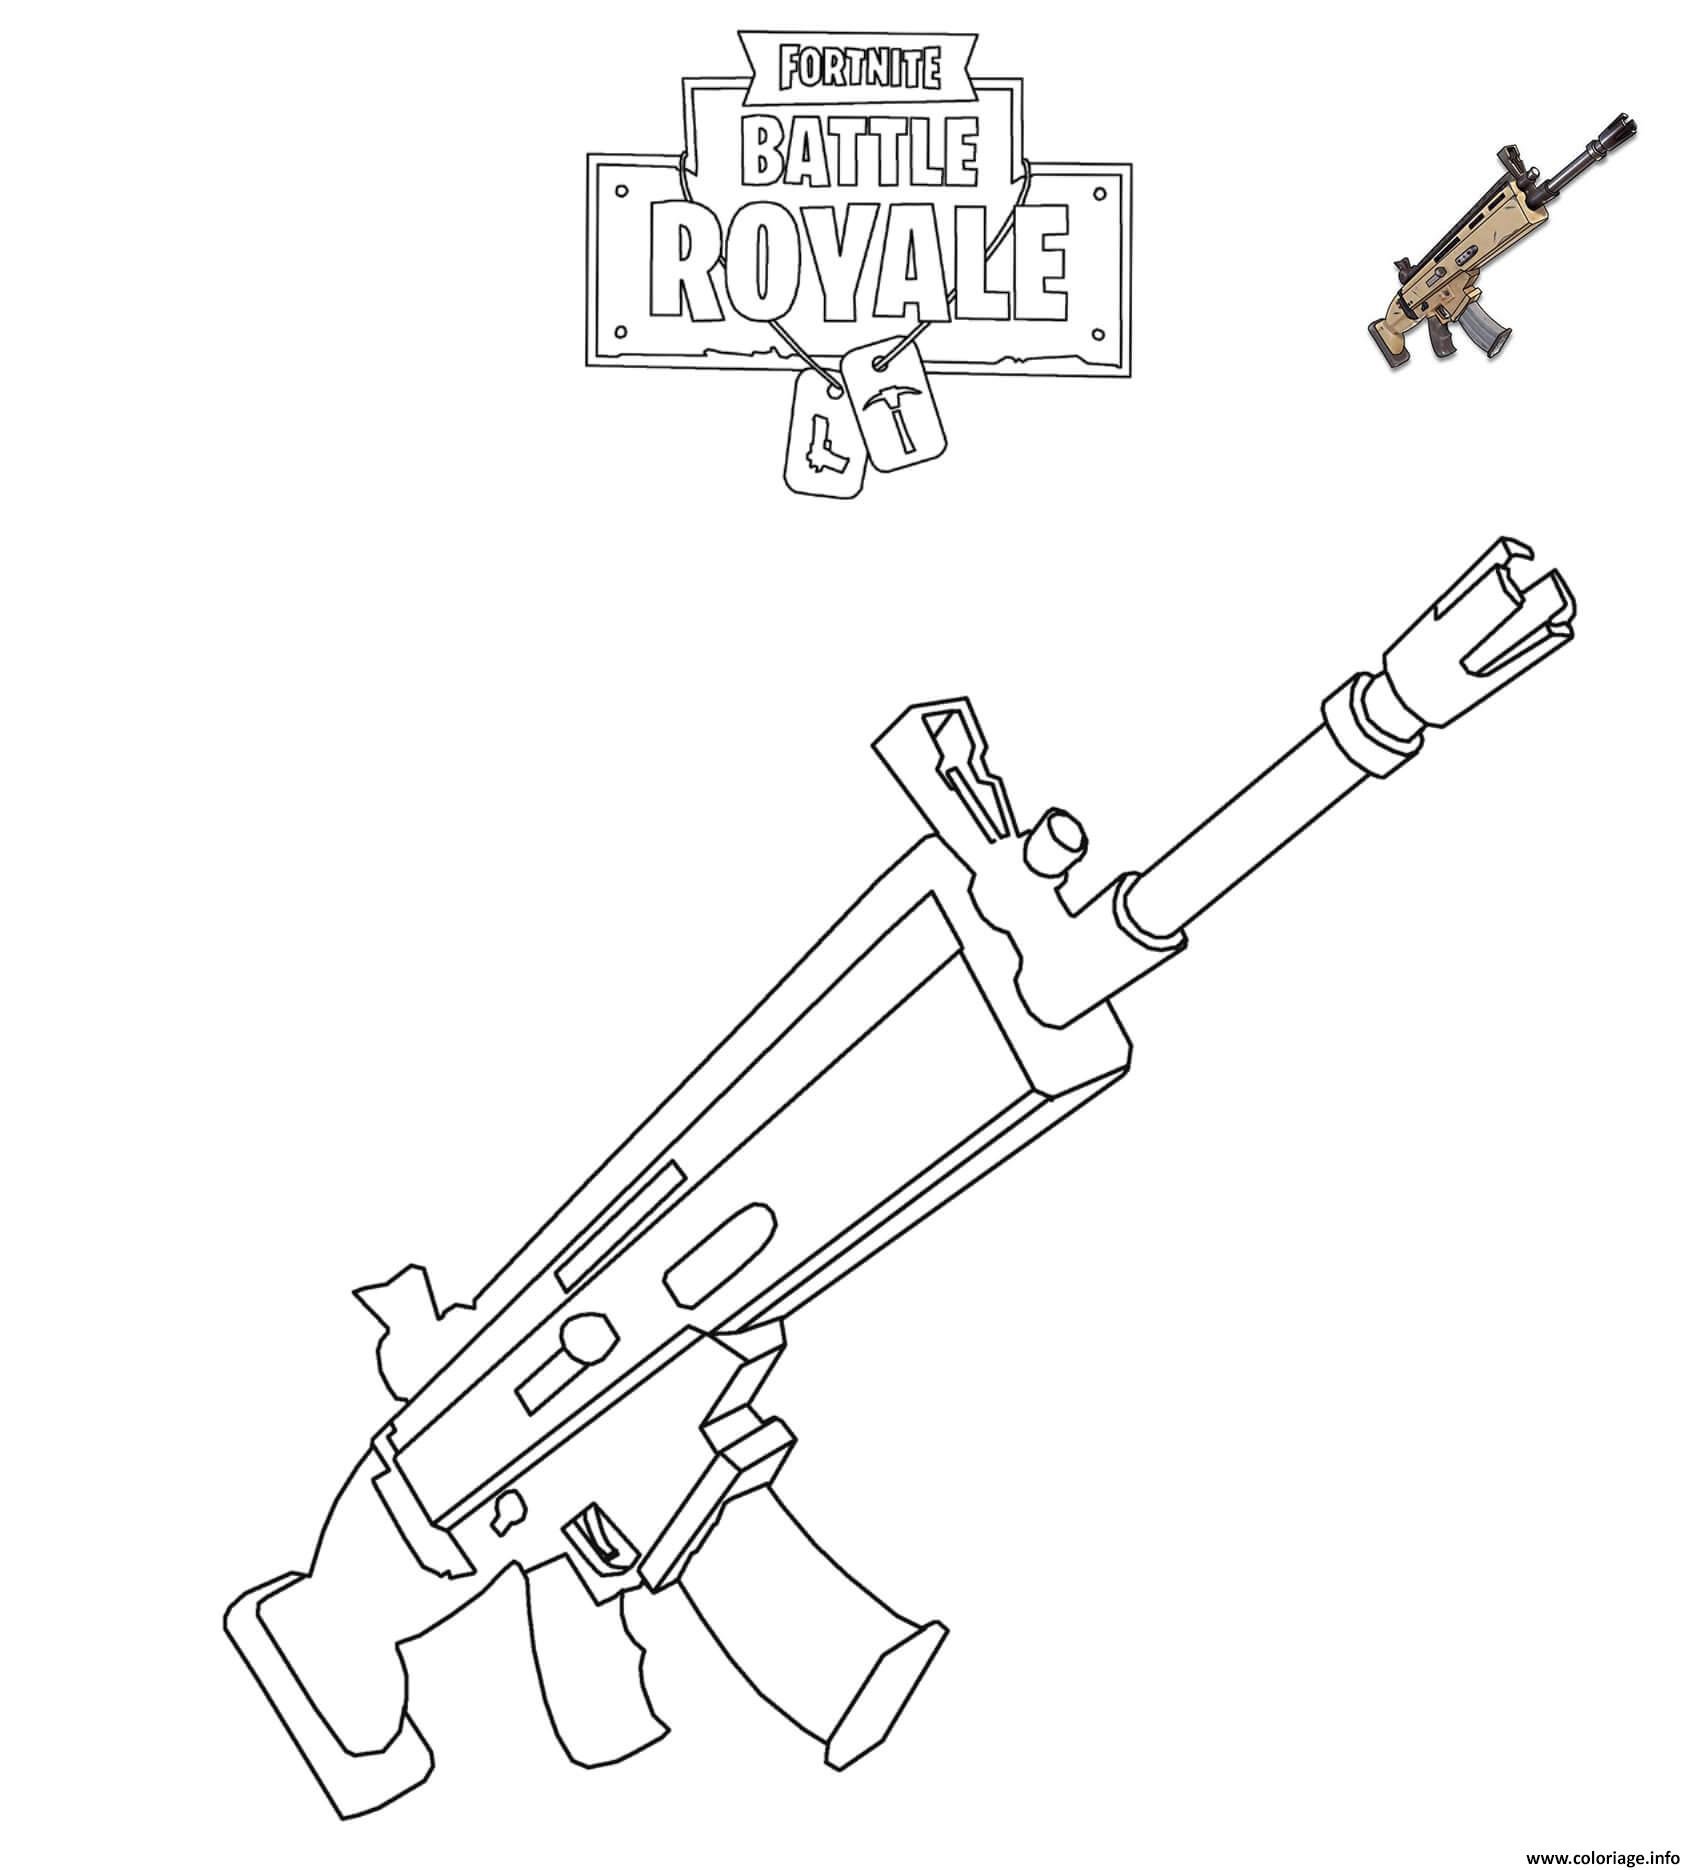 Charmant Coloriage Fortnite 84 sur Coloriage Inspiration with Coloriage Fortnite